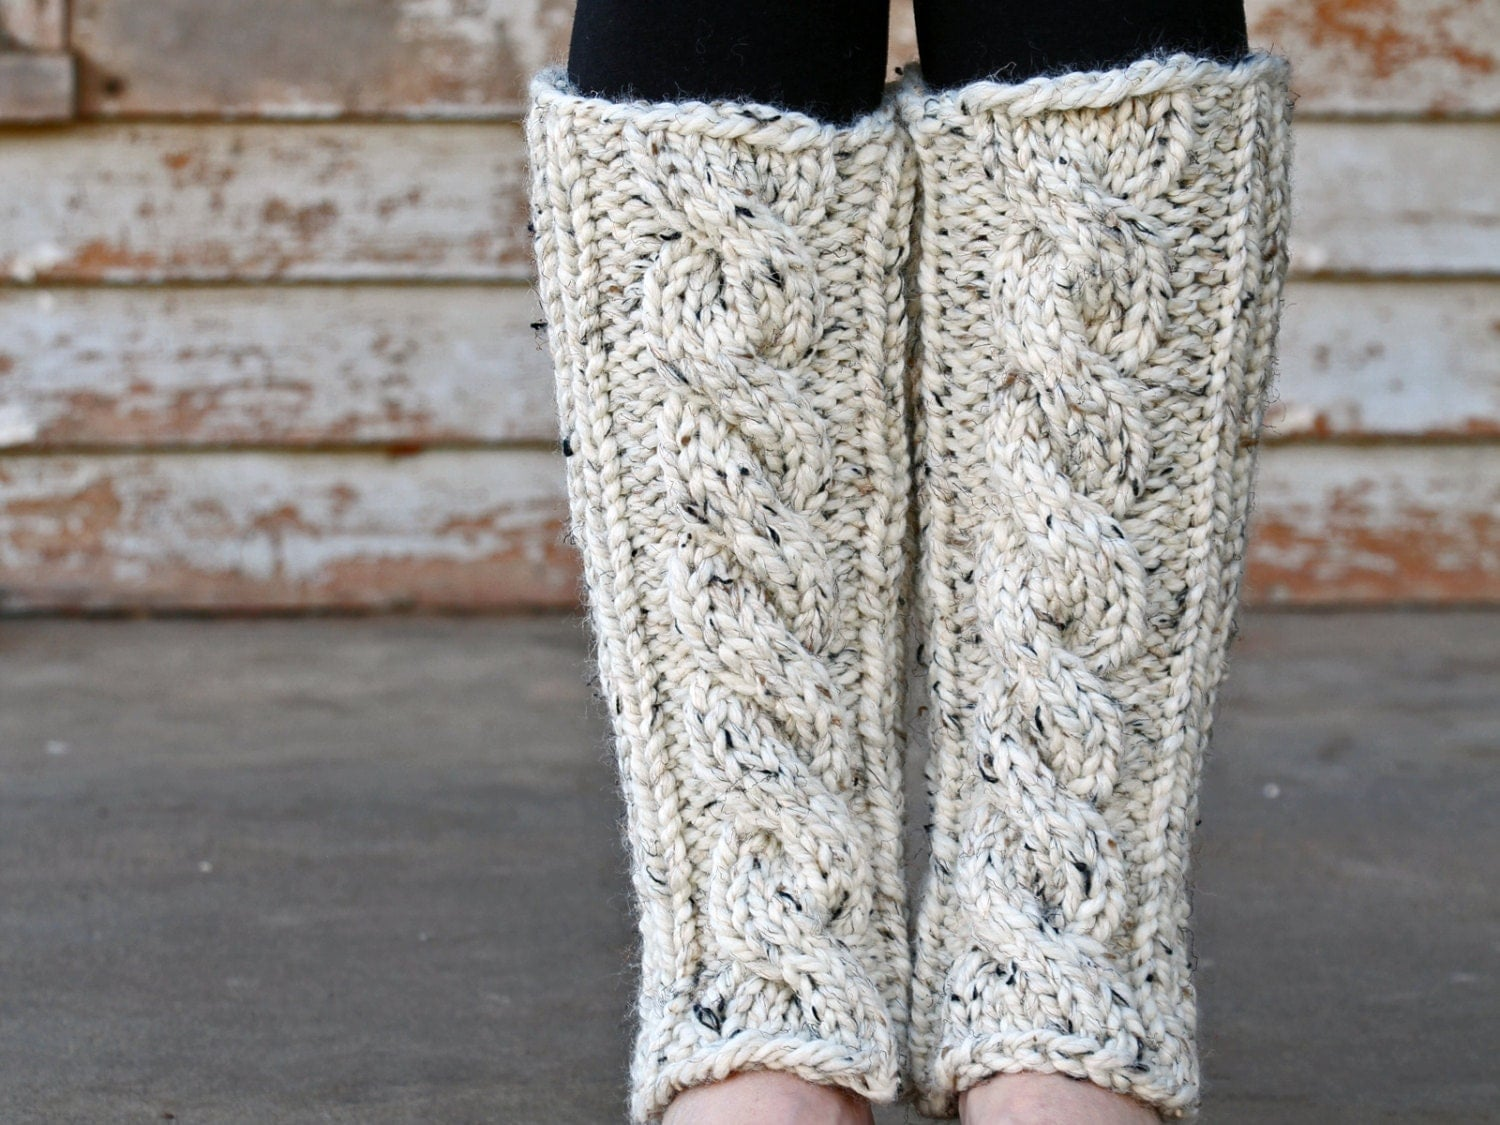 Knitting Leg Warmers Pattern : Cable Knit Leg Warmers Knitting PATTERN INVENTIVENESS a